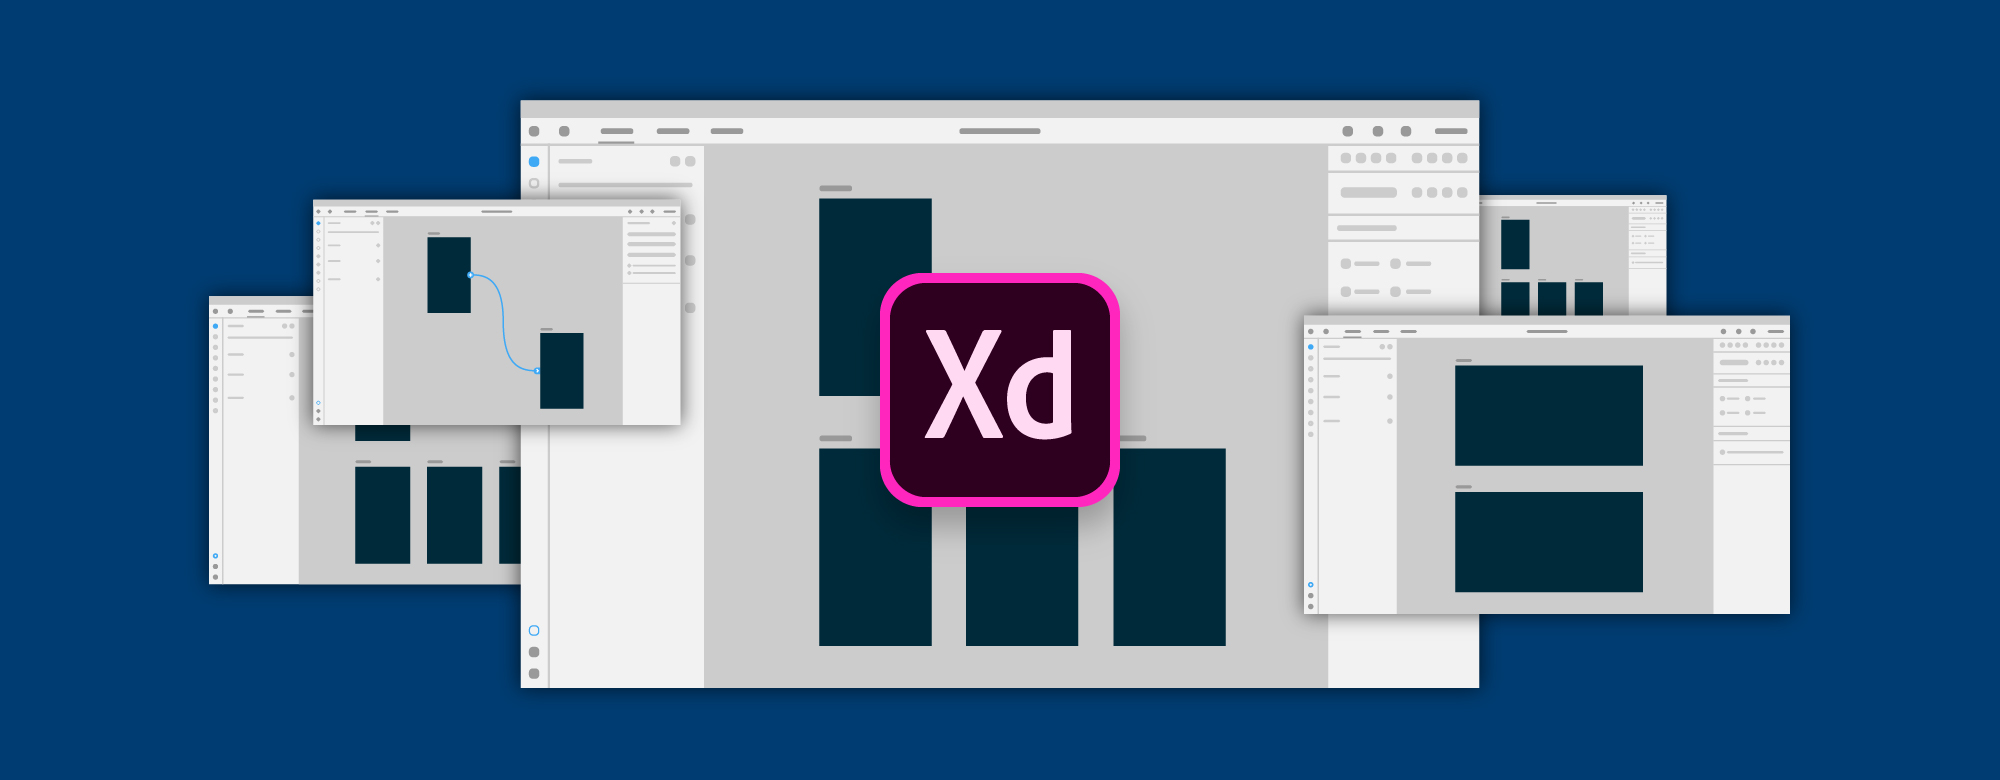 Adobe XD: A better web design application